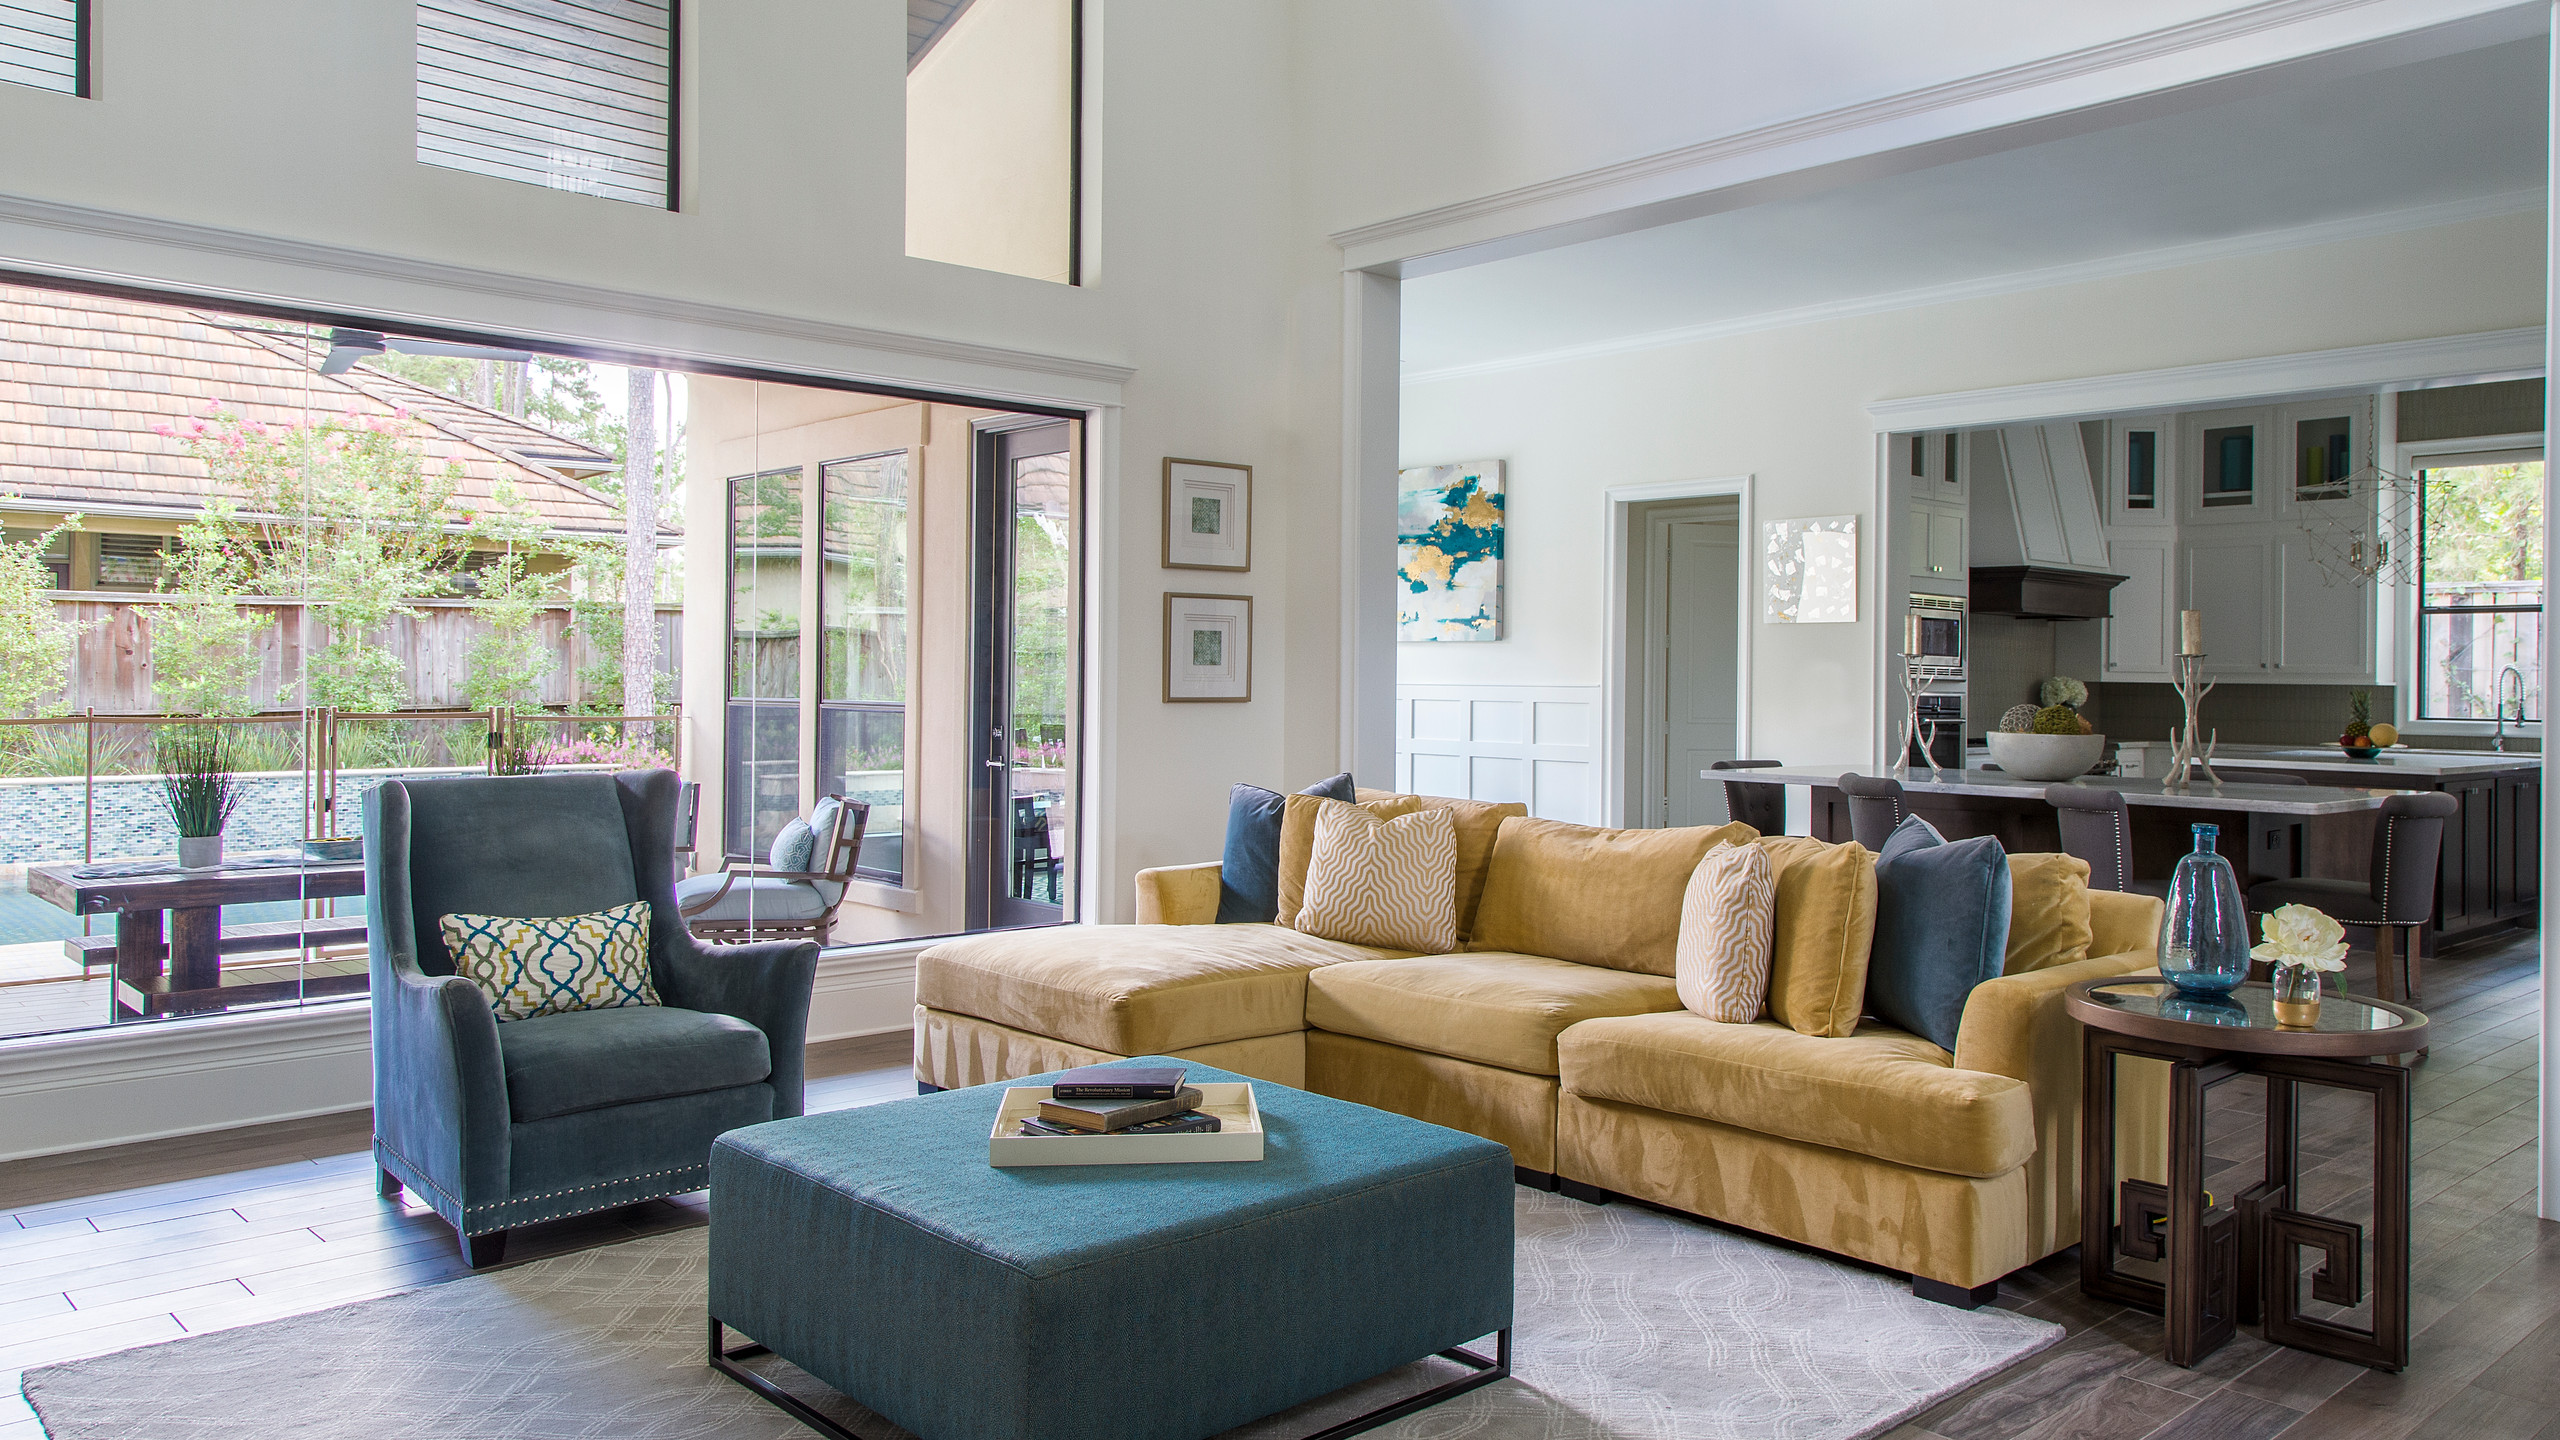 transitional living room of an open concept home. accents of bright colors pop against crisp white walls